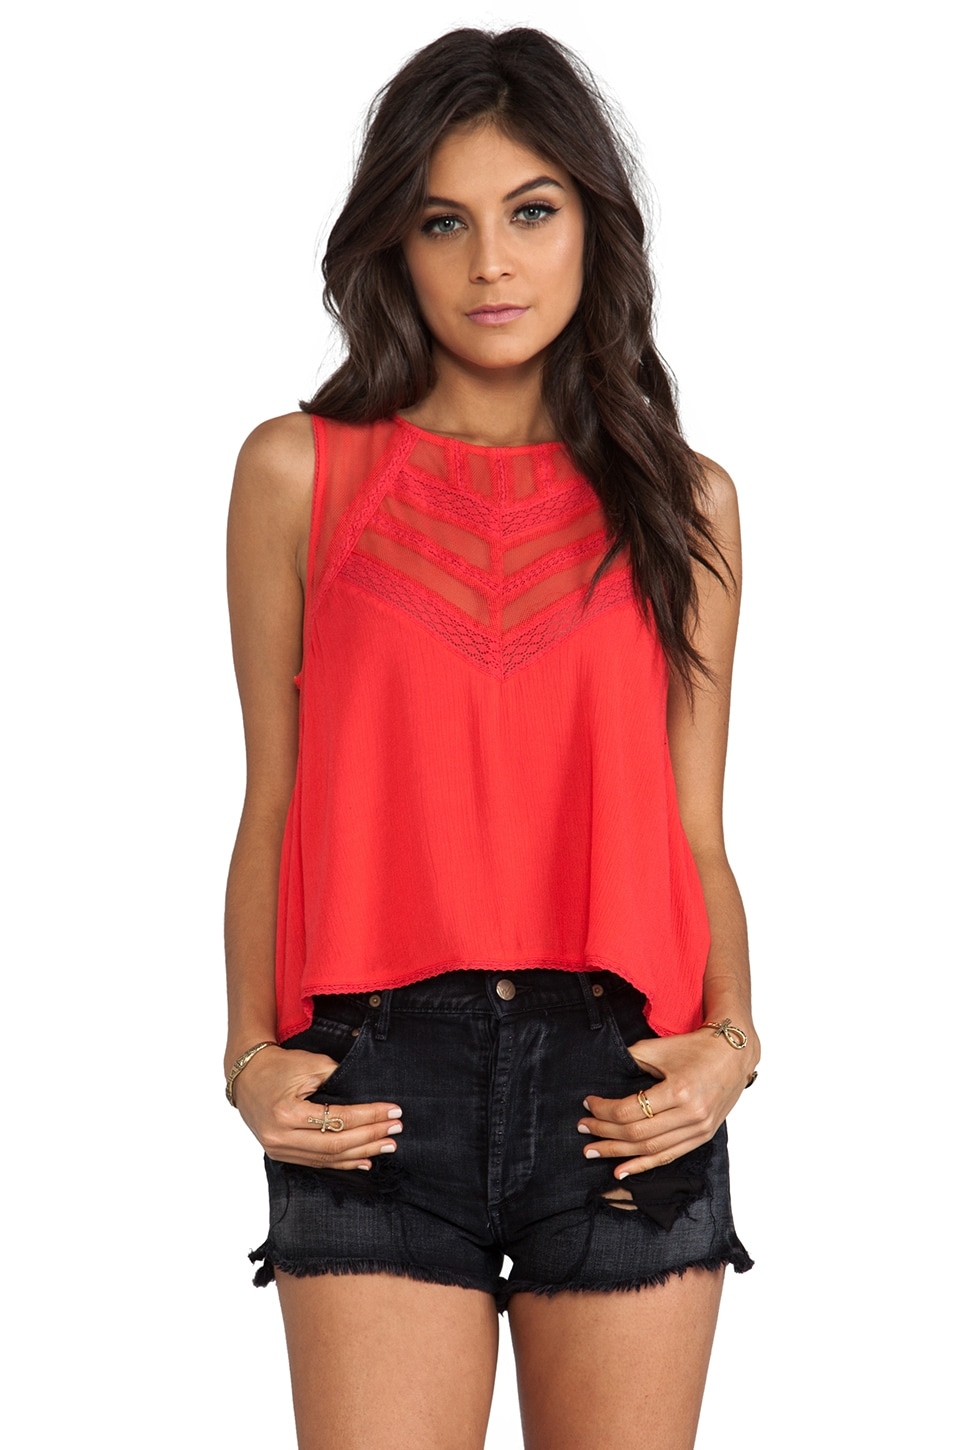 Free People Shellshock Top in Poppy Red